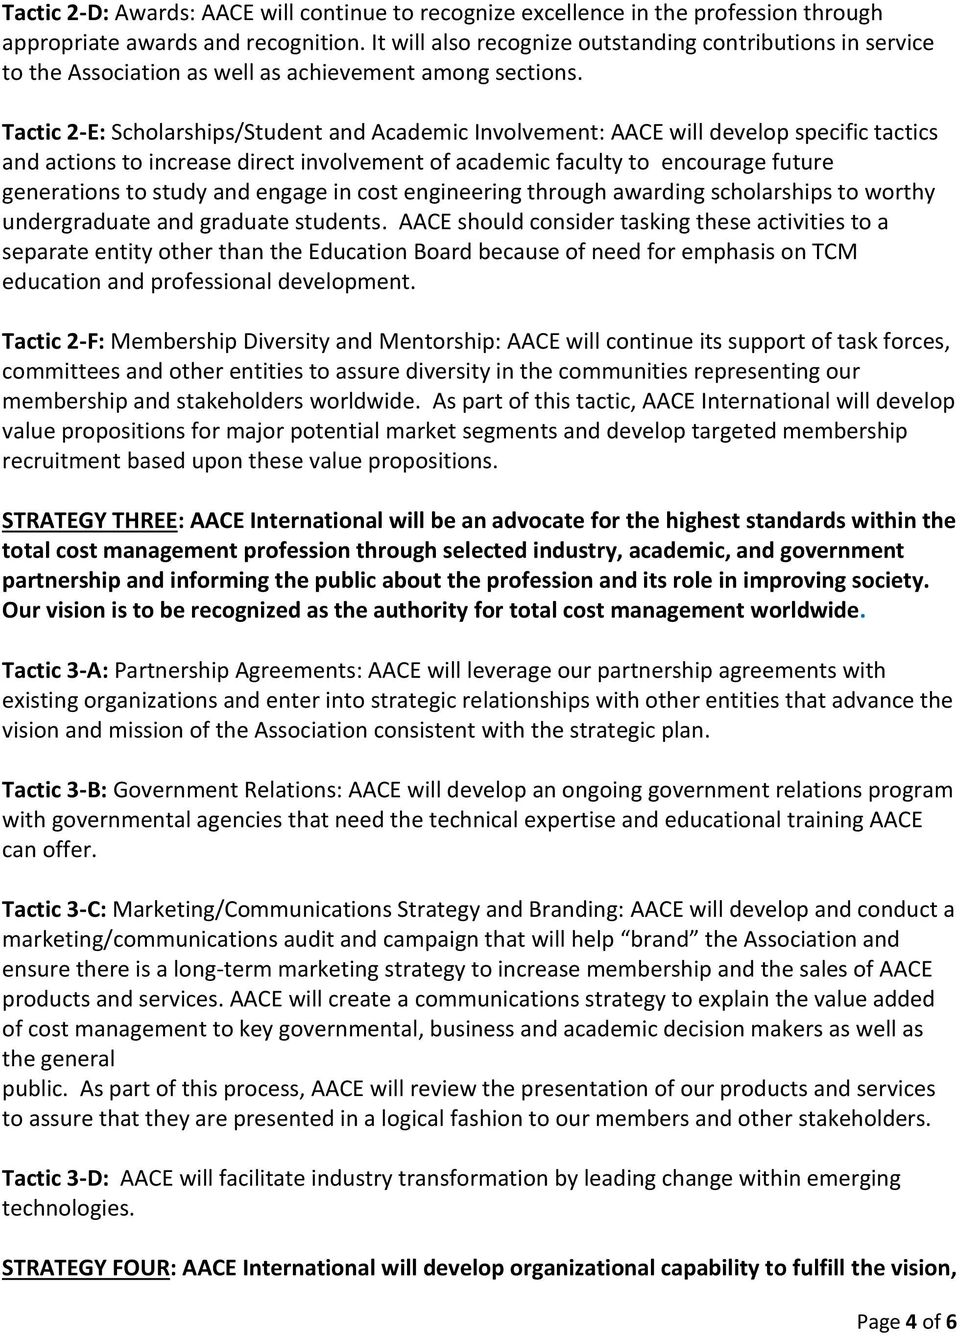 Tactic 2-E: Scholarships/Student and Academic Involvement: AACE will develop specific tactics and actions to increase direct involvement of academic faculty to encourage future generations to study